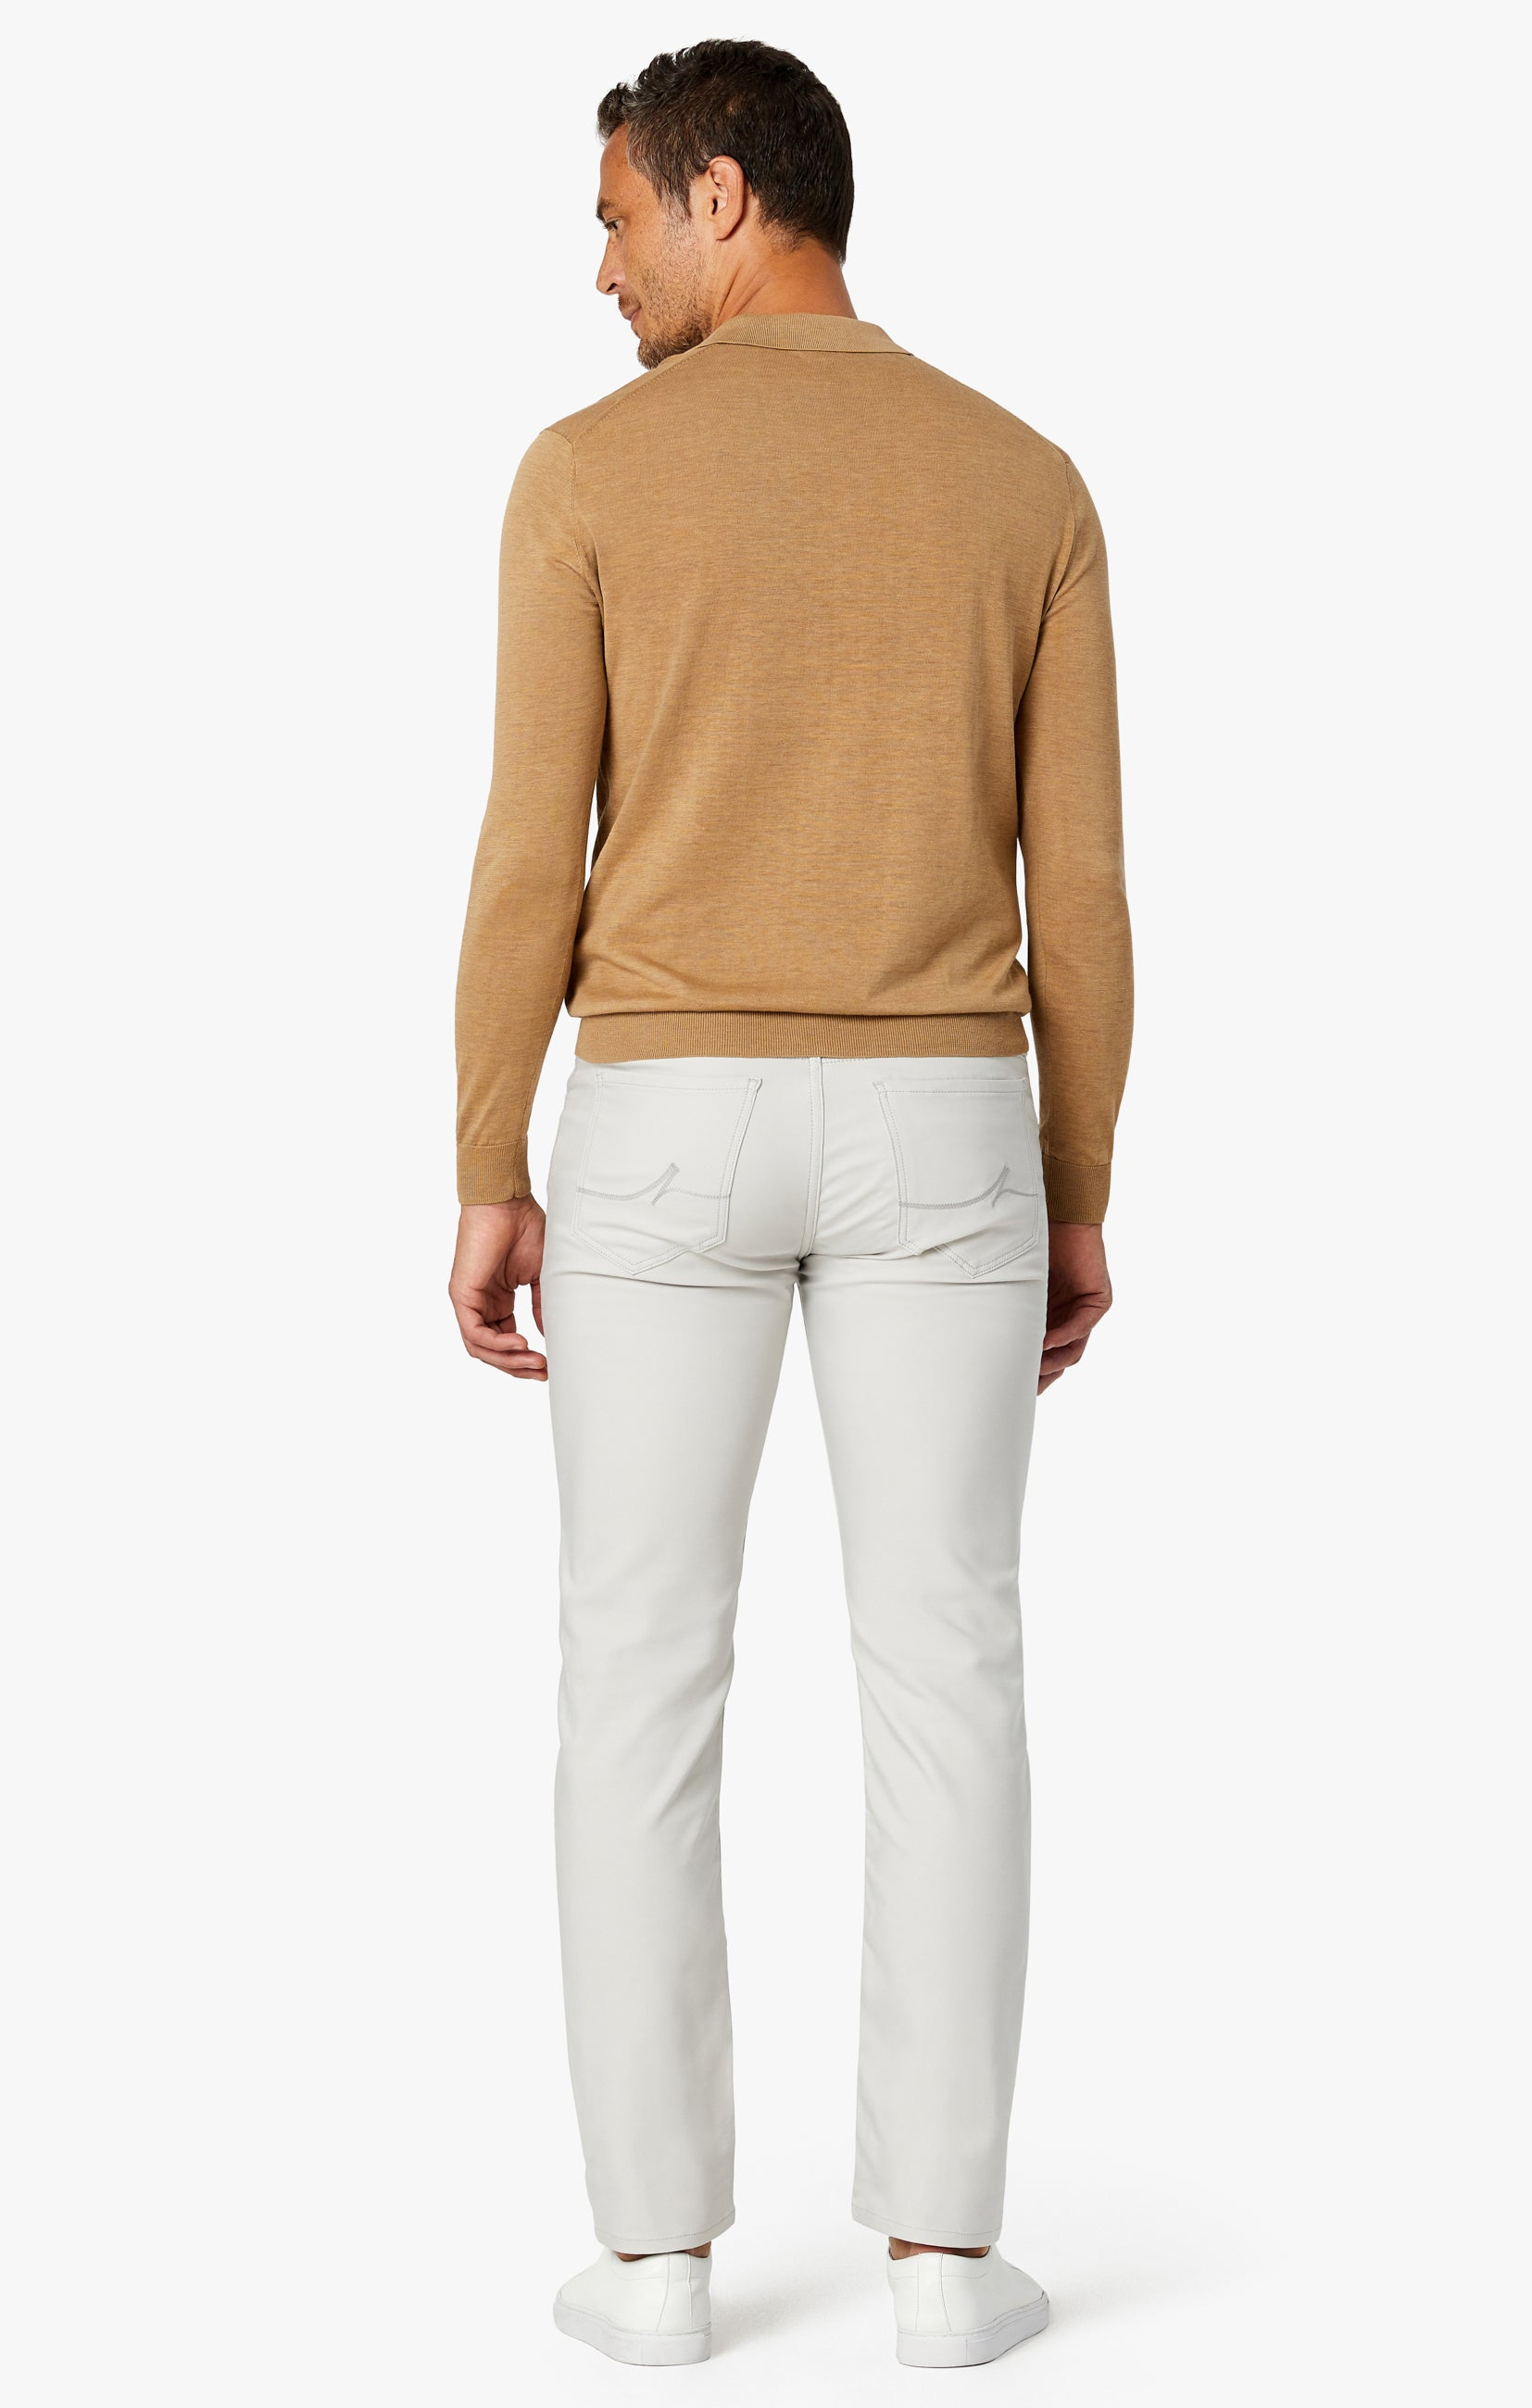 Charisma Classic Fit Jeans in Pearl Commuter Image 5